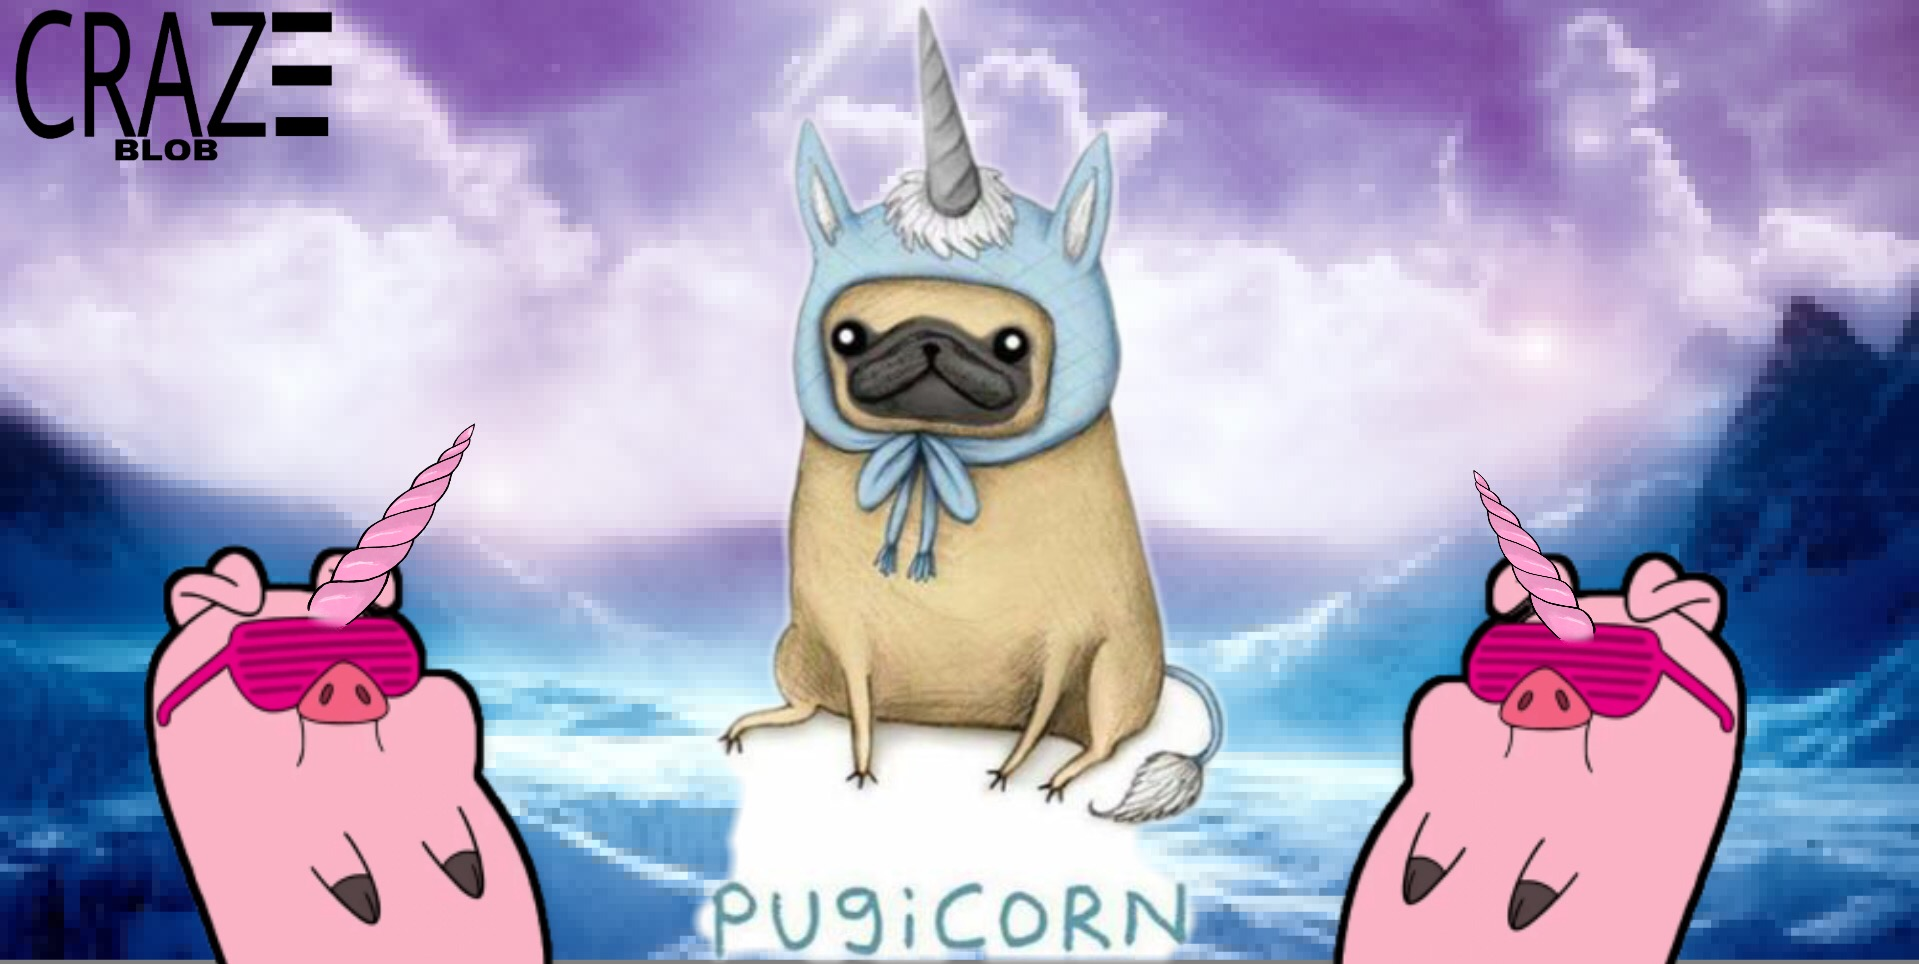 1000 Awesome Pugicorn Images On PicsArt